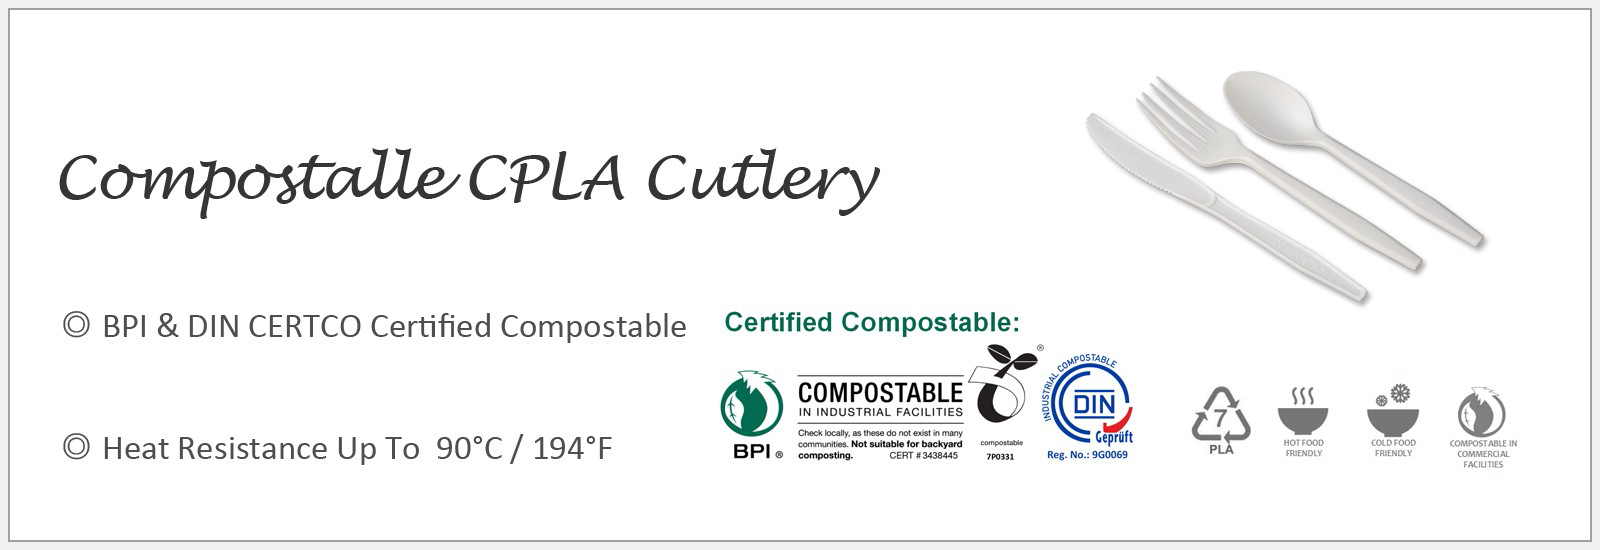 Compostable Aterimet